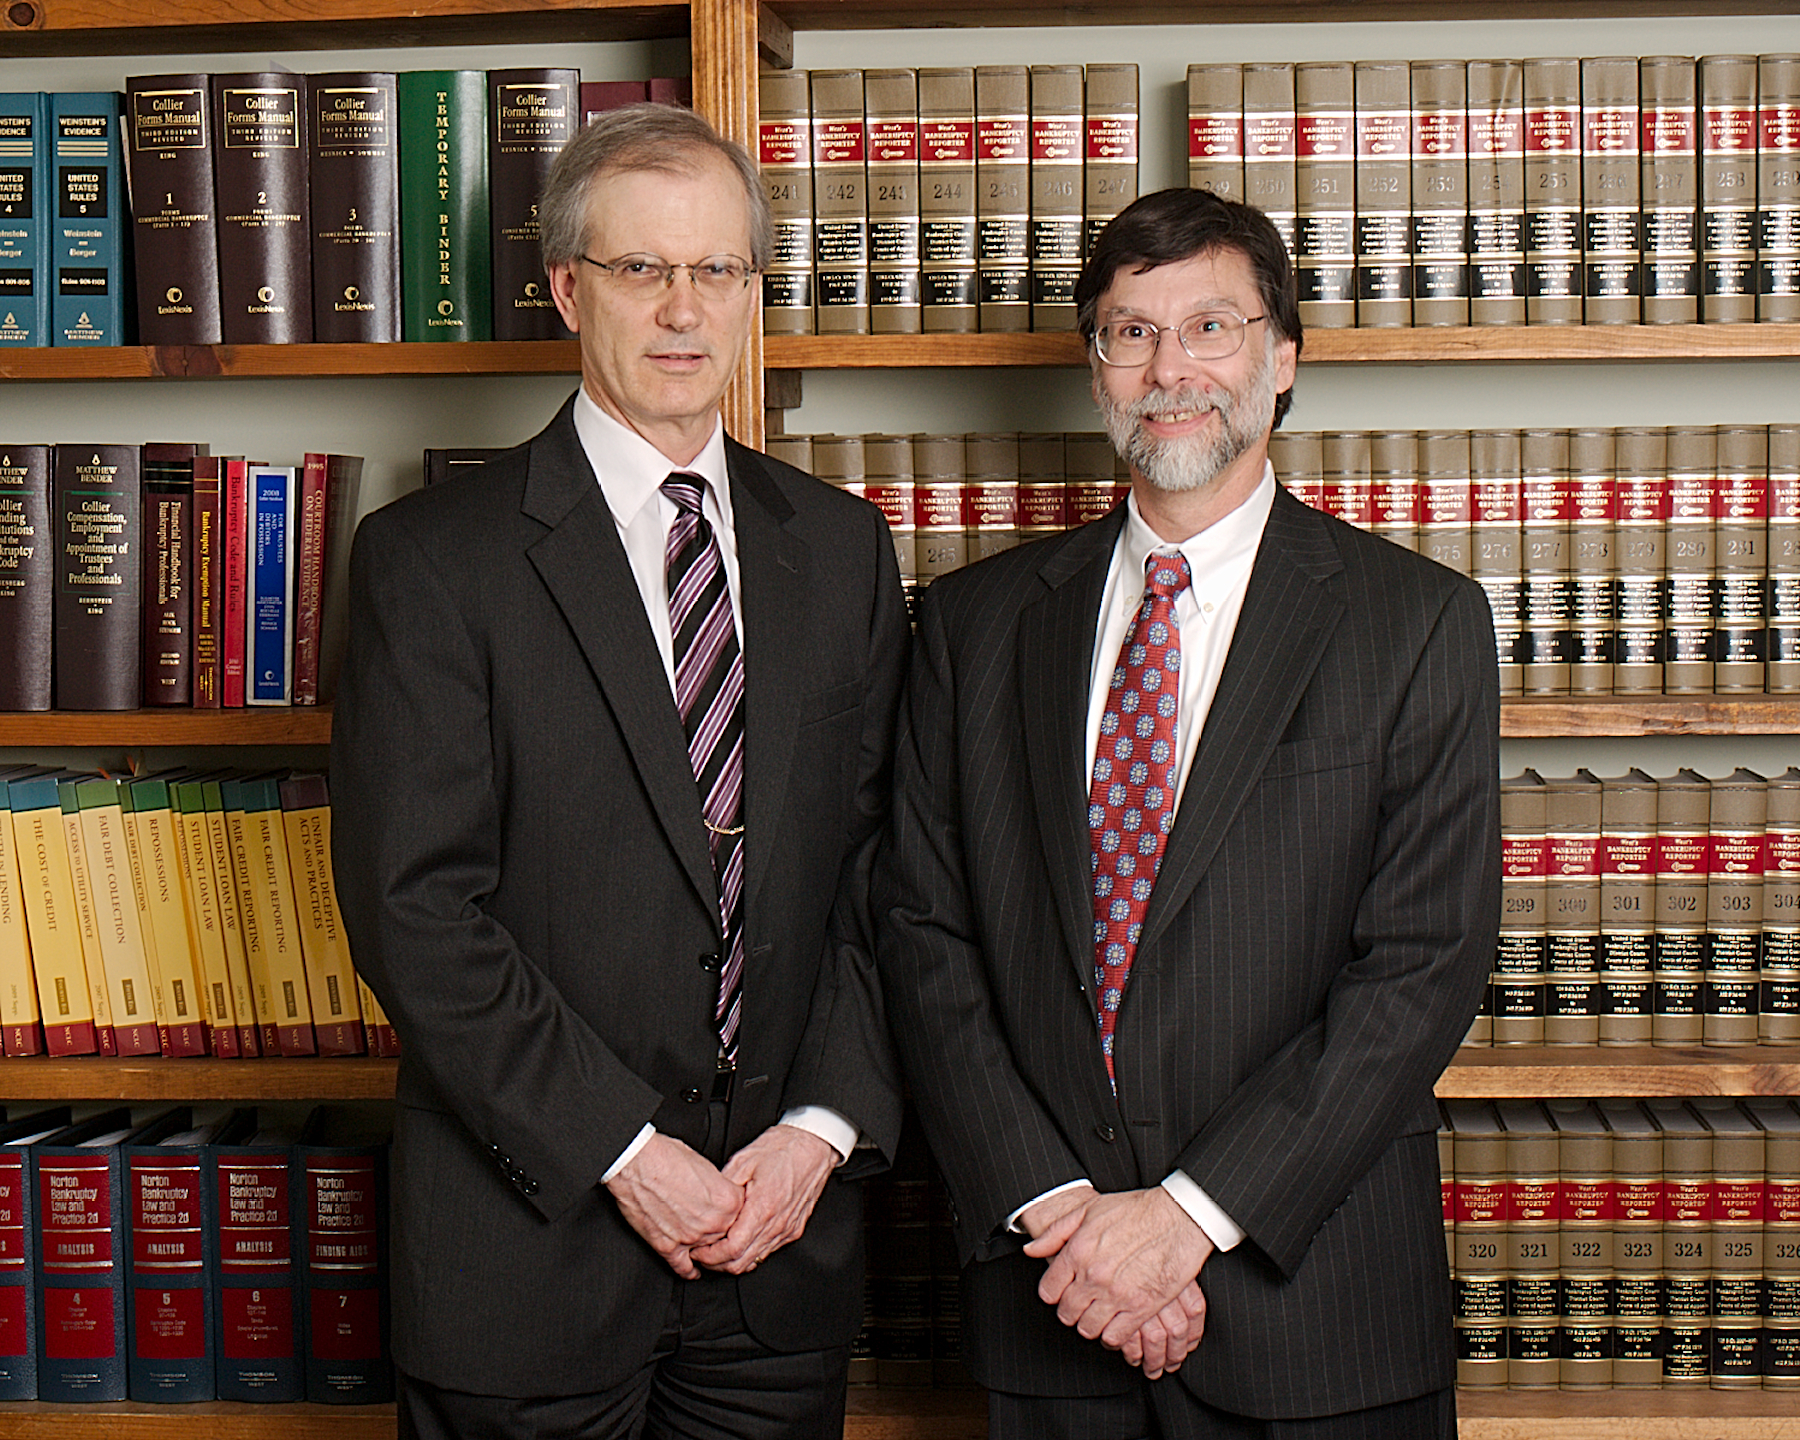 Law Offices Of Charles H Camp, P.C.: Michael O'Leary - Middletown, NY 10940 - (845)343-6227 | ShowMeLocal.com